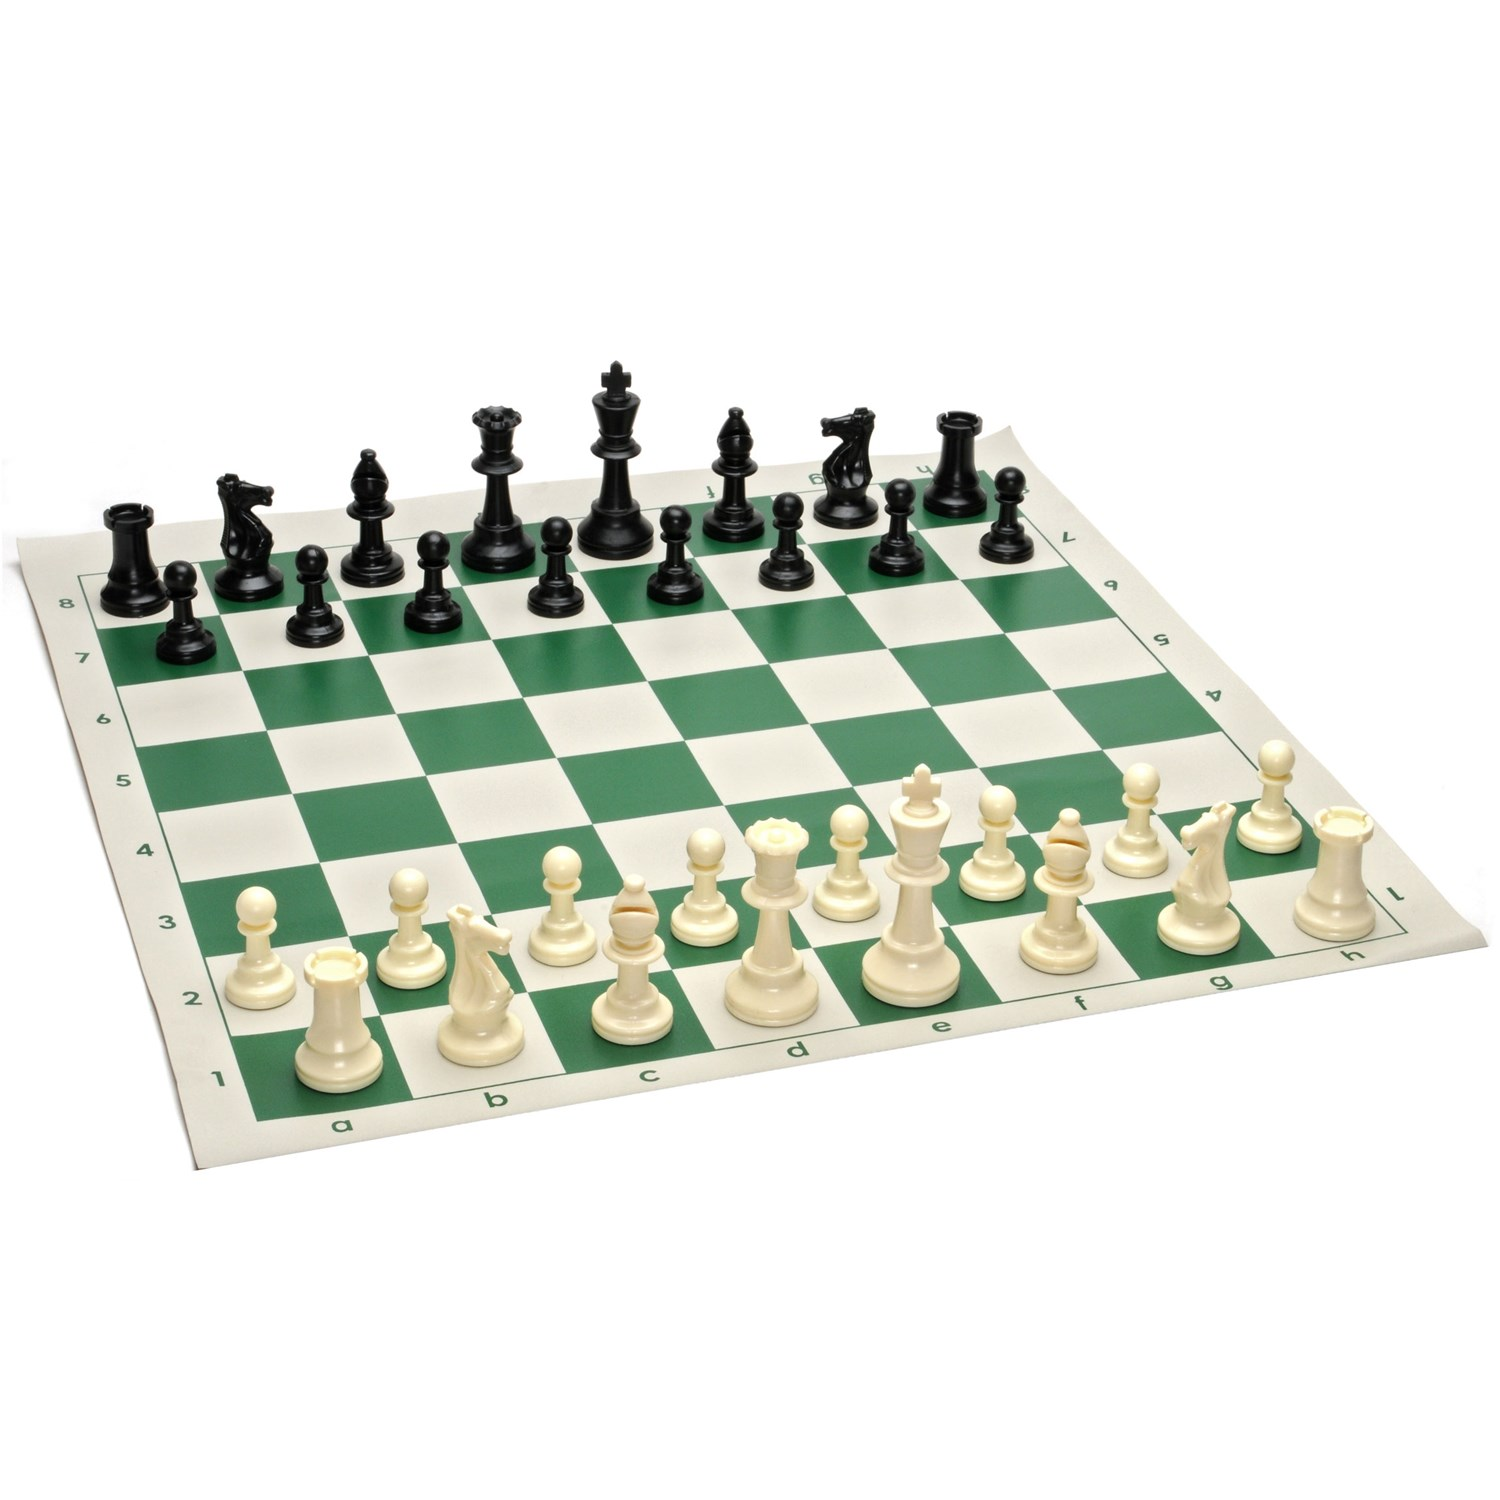 Tournament Chess Pack Staunton Pieces With Green Board